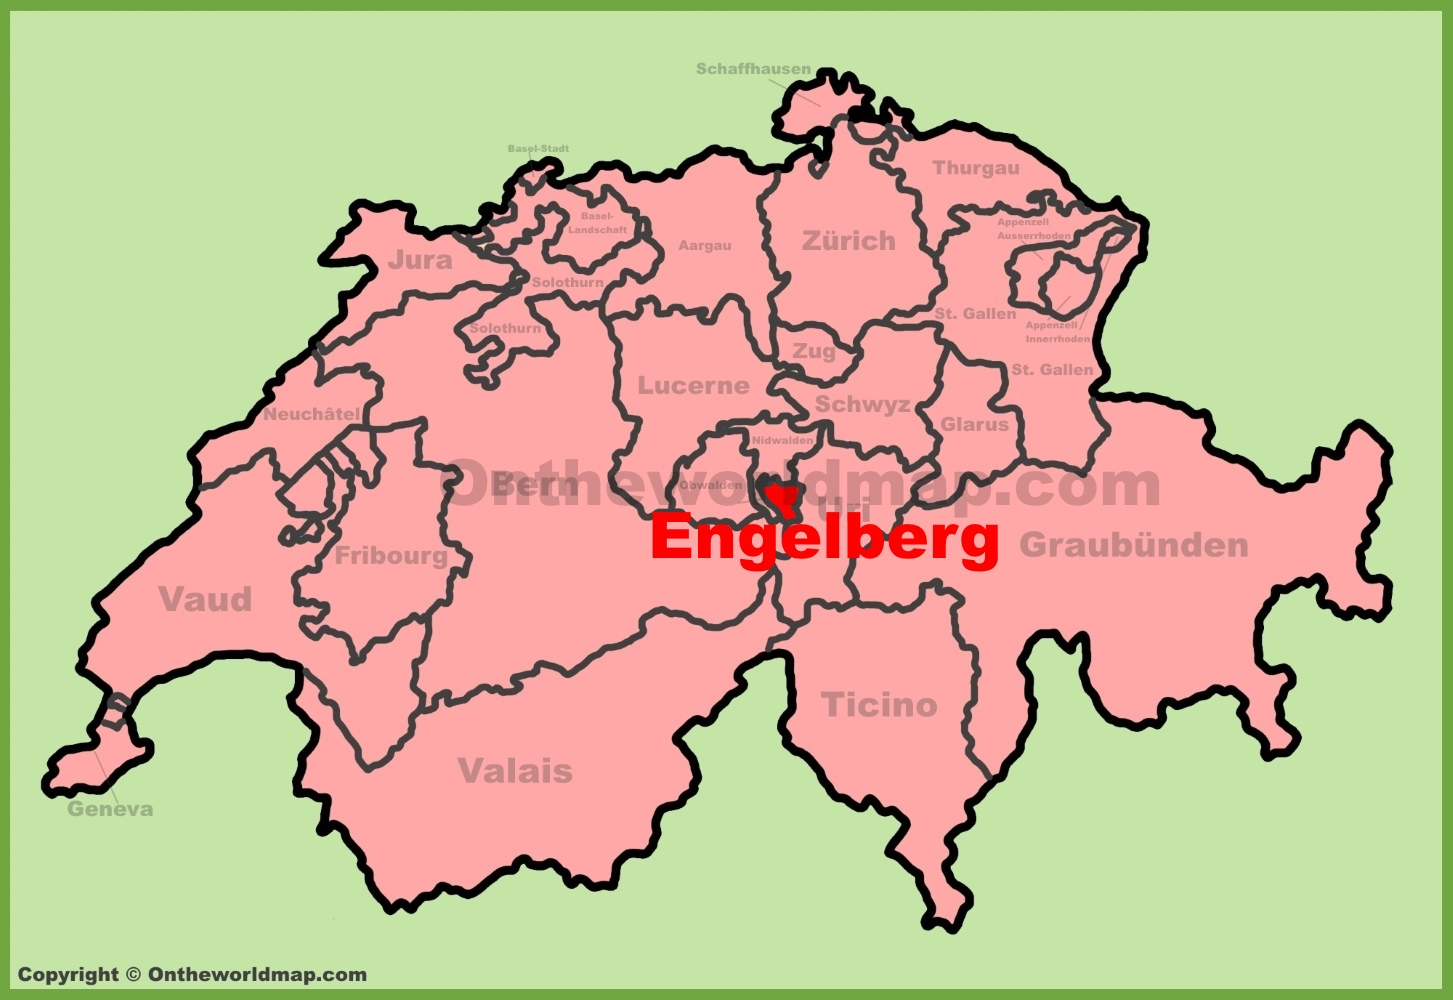 Engelberg location on the Switzerland map